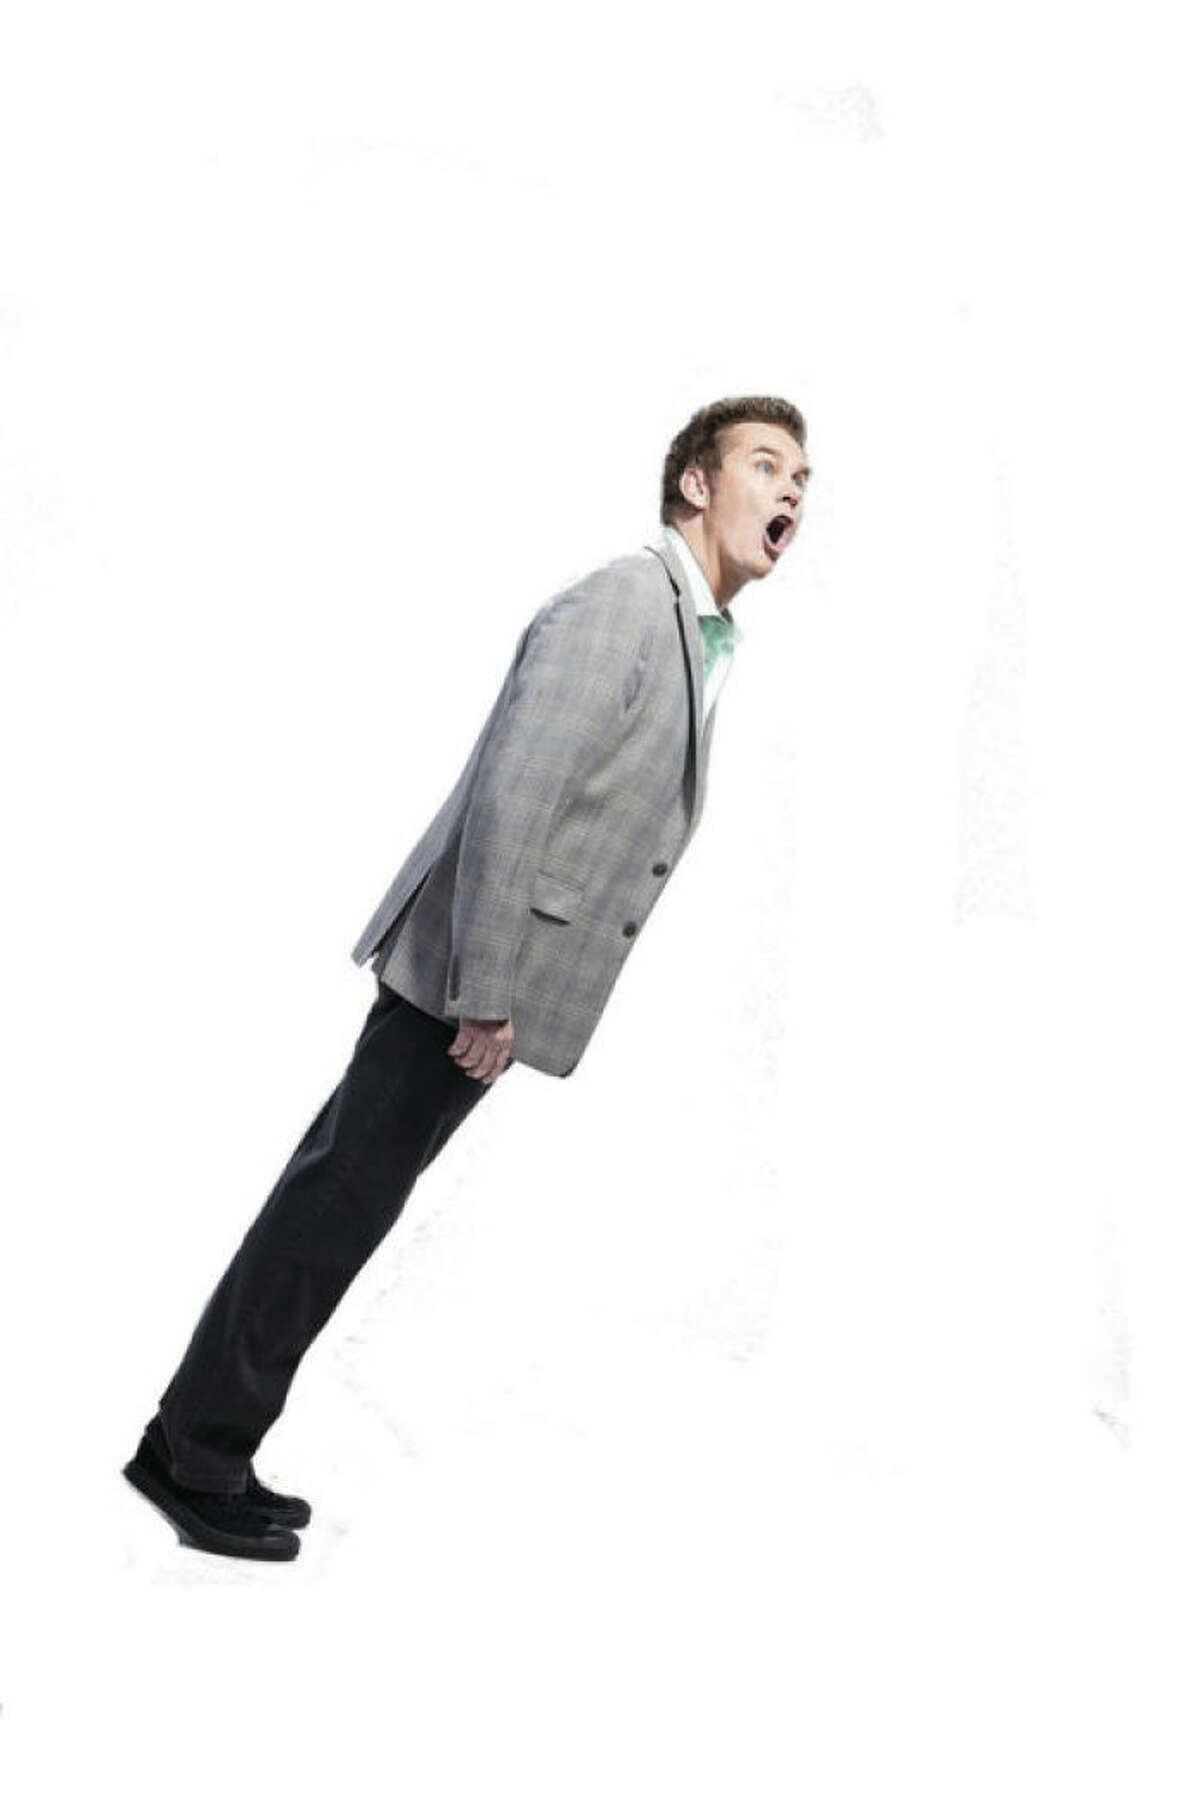 Brian Regan brings his 'clean act' to Stamford's Palace Theater